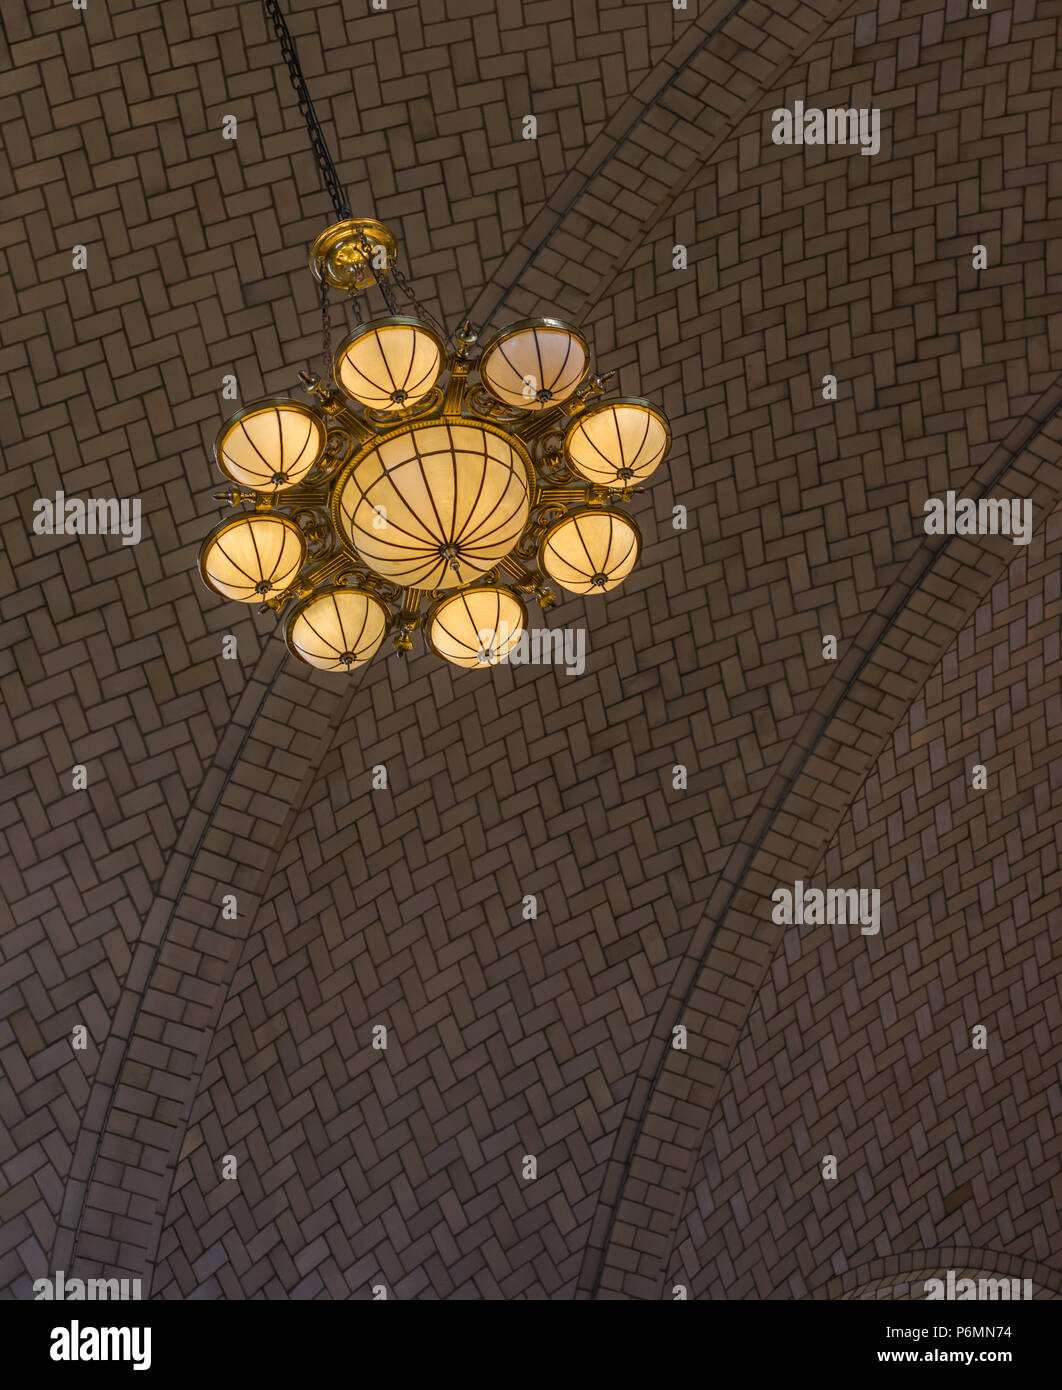 Beautifull ornate lamp hangs from a herrinbone styled acrhed ceiling in the reception area on Ellis Island, off Manhattan, New York City ornate lamp h - Stock Image